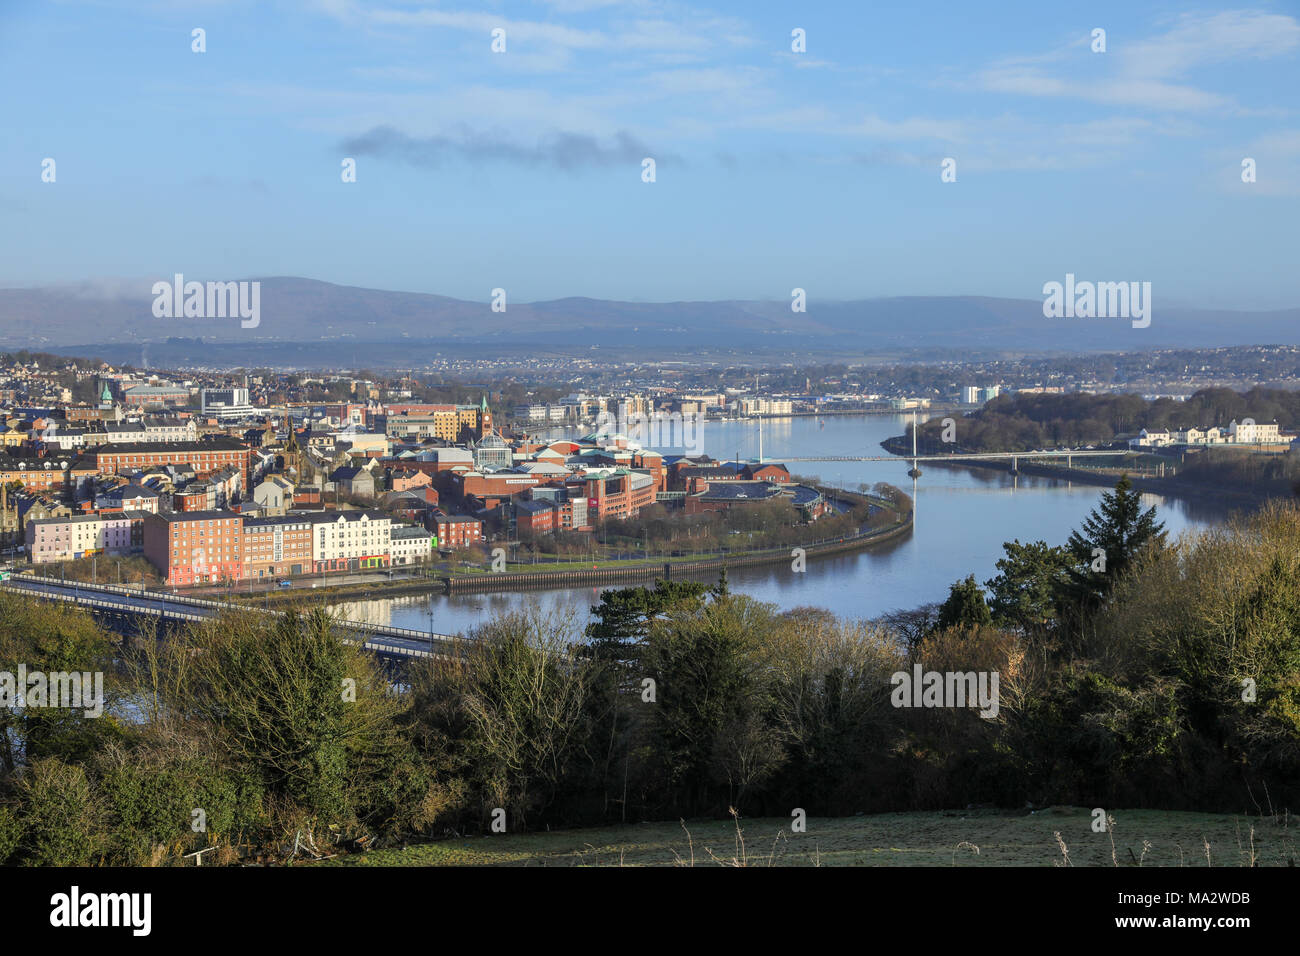 Derry, Londonderry and the River Foyle, Northern Ireland. - Stock Image